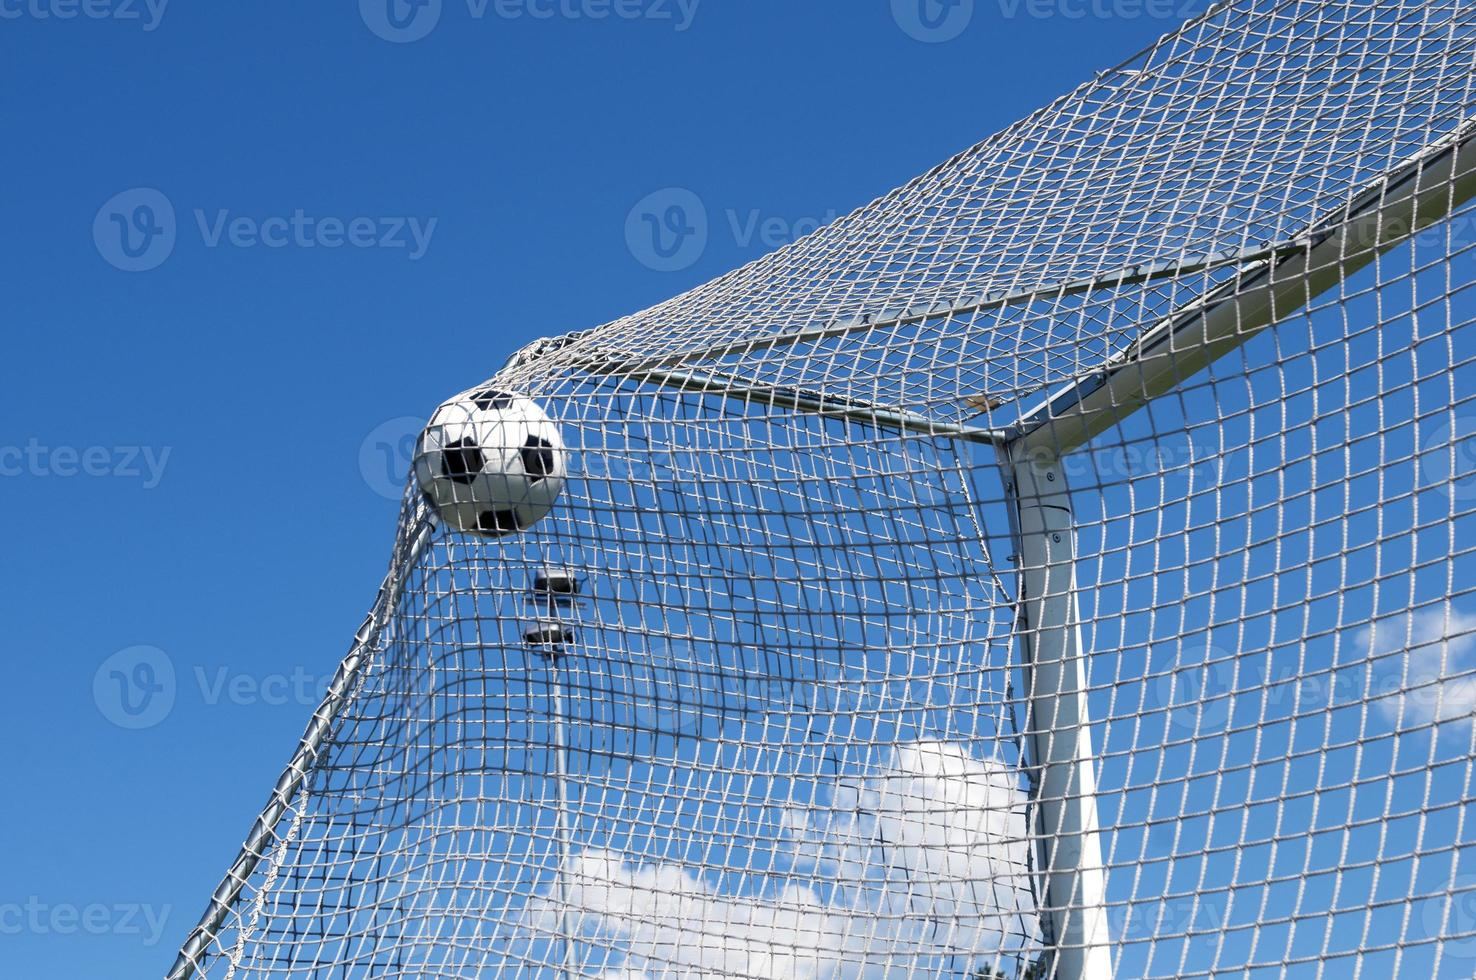 Soccer makes a great goal photo